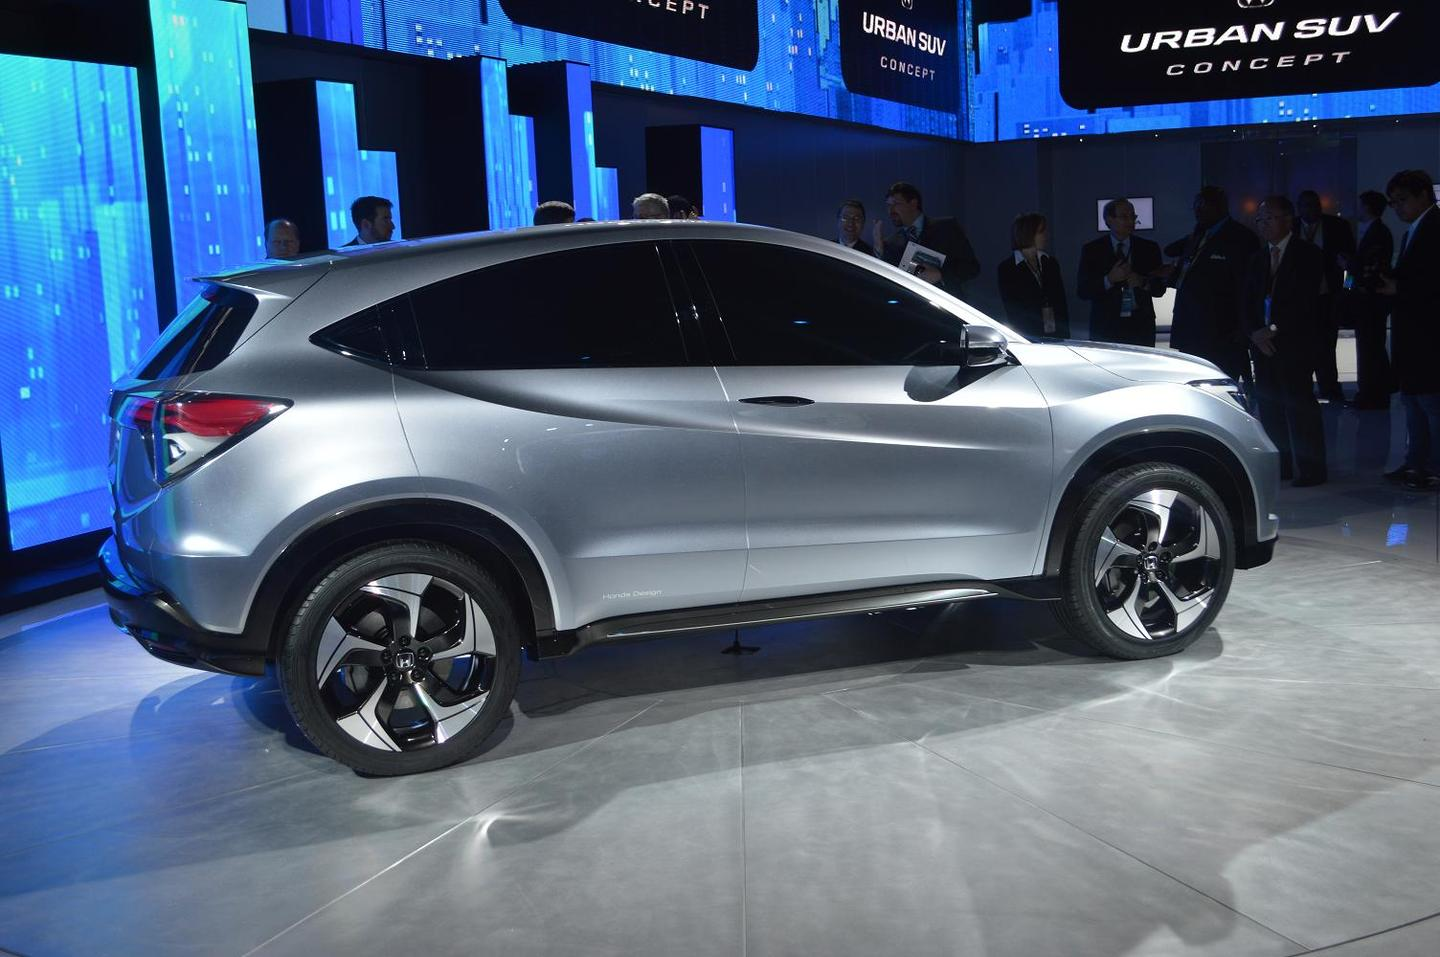 A vehicle based on the Urban SUV Concept will be launched in Japan by the end of the year, with a US release following next year